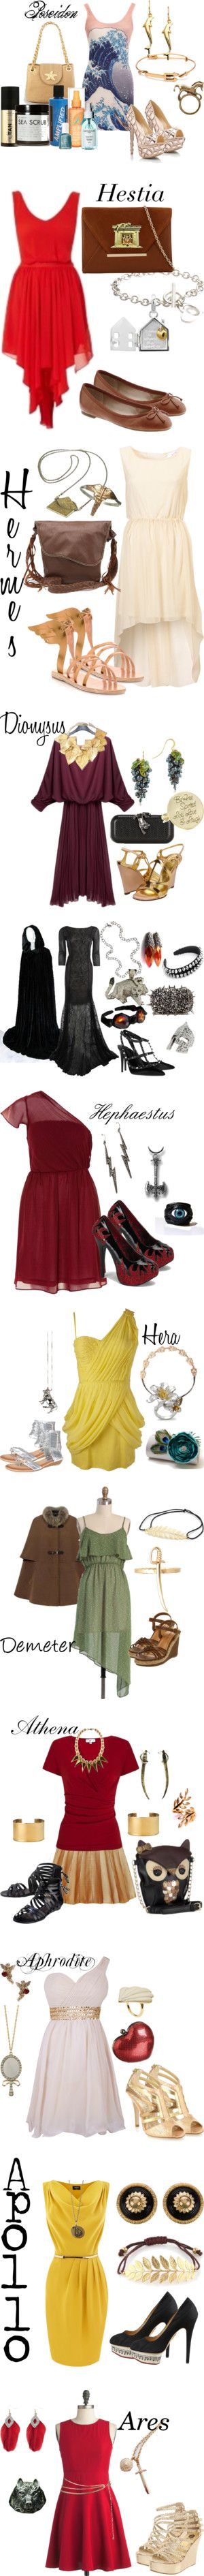 """Greek Gods and Goddess"" by strawberryapricotpie ❤ liked on Polyvore"